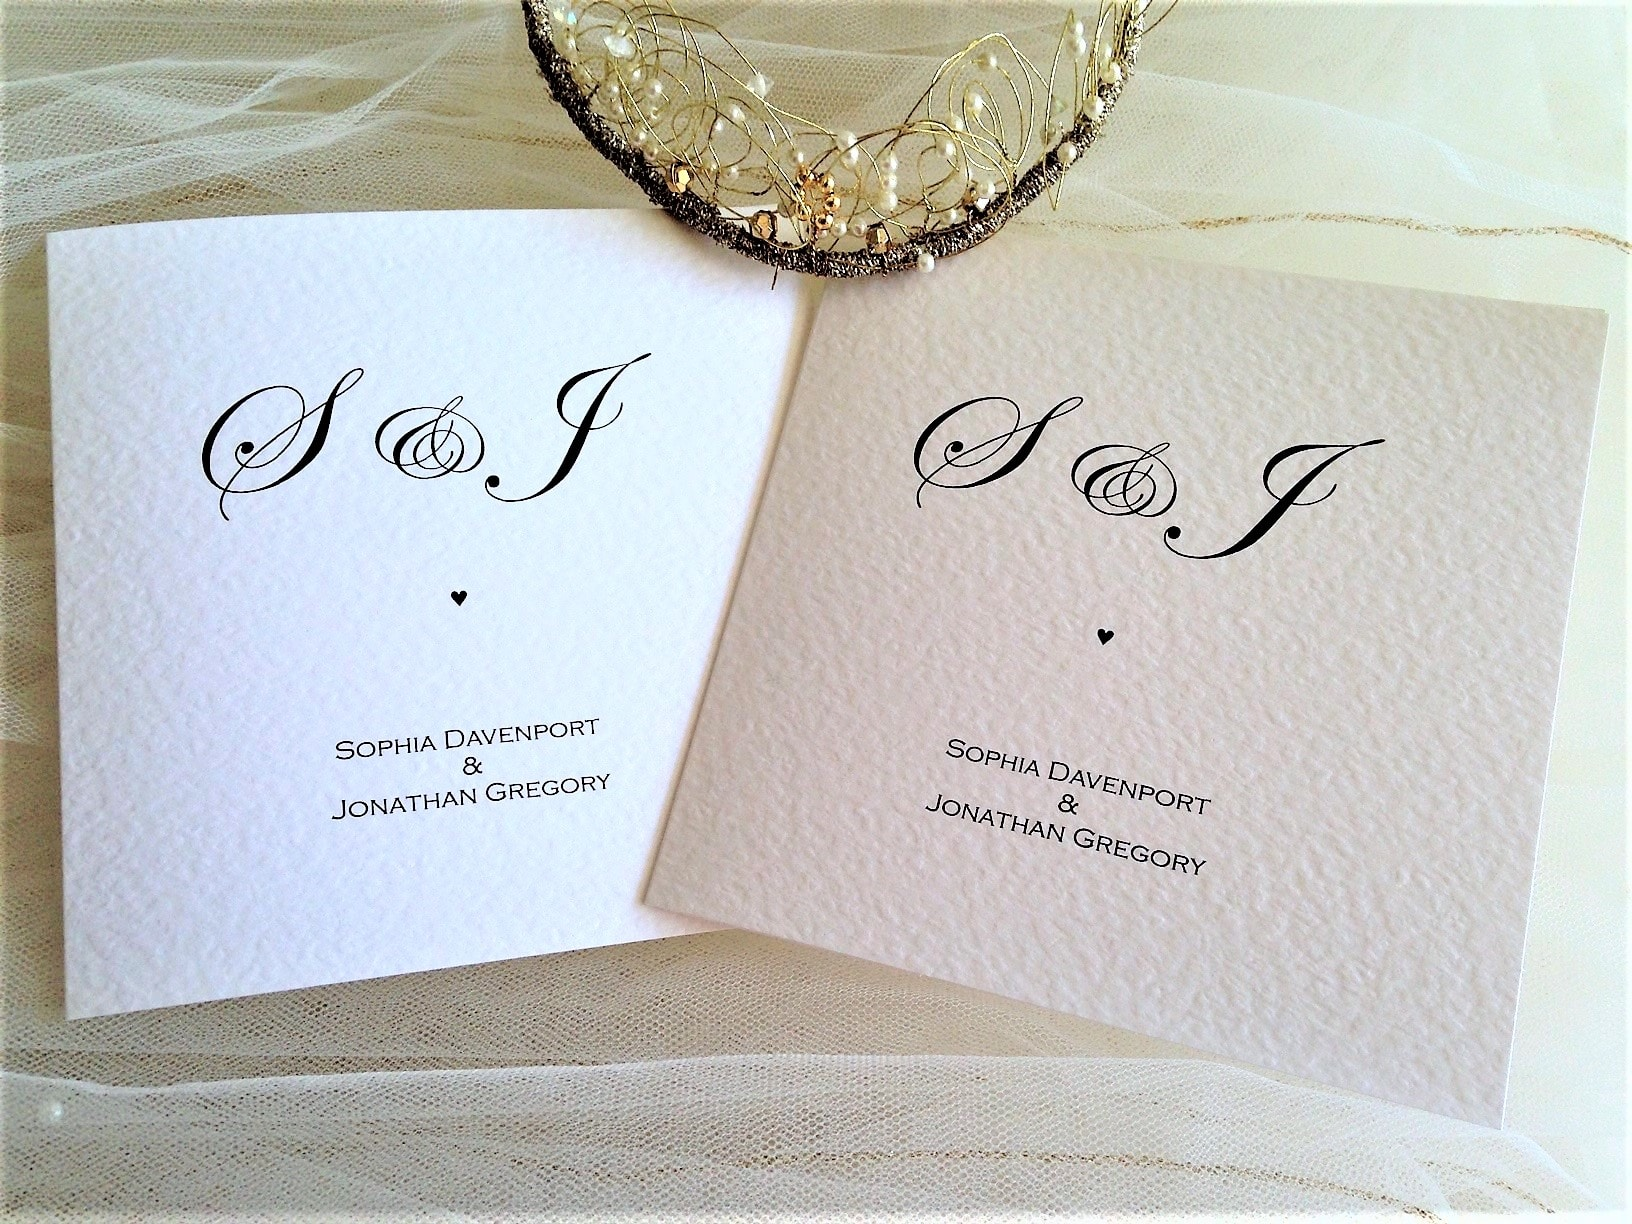 Oxford Wedding Invitations - Daisy Chain Invites